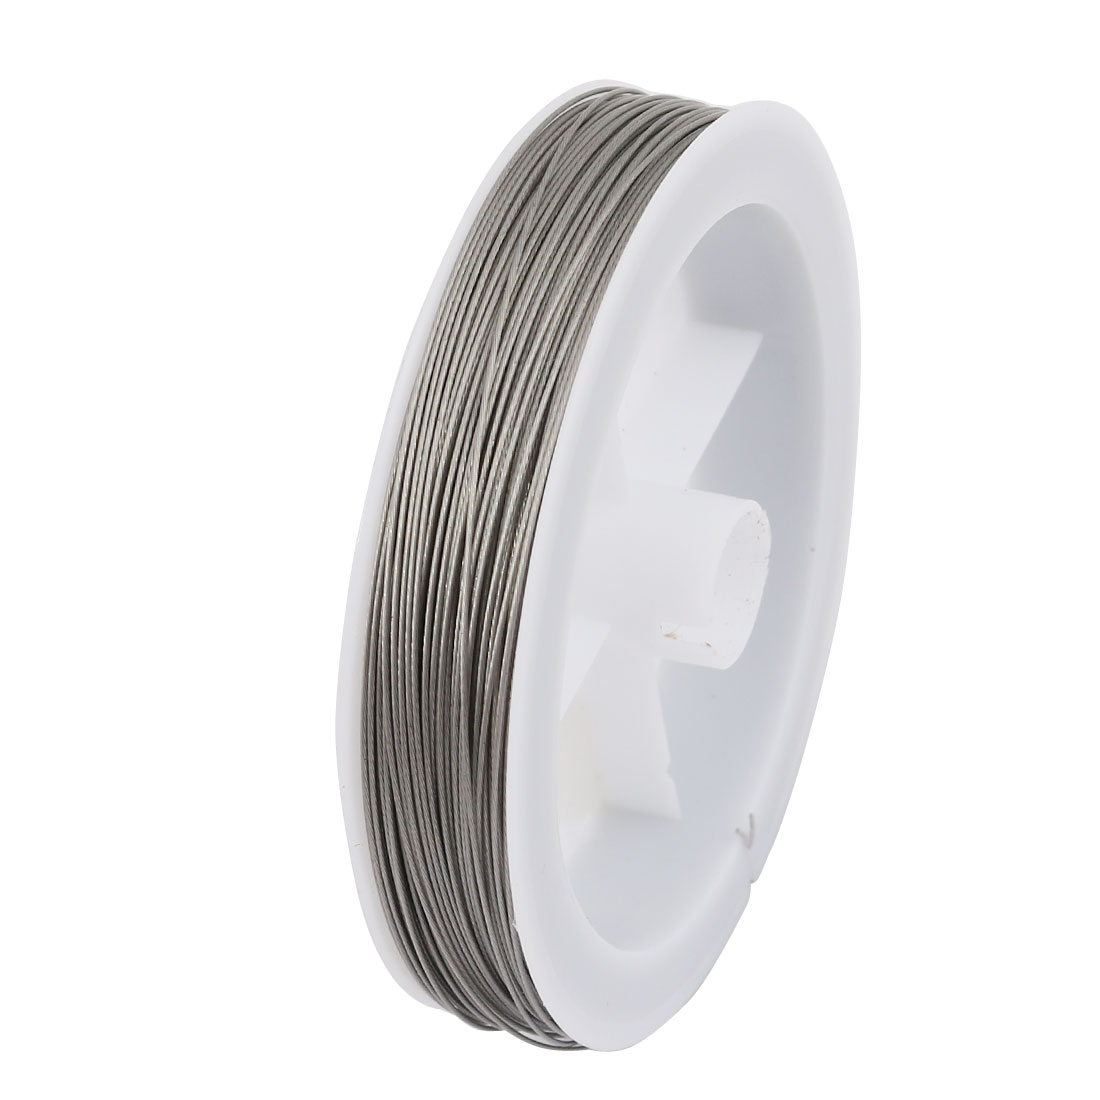 0.45mm Diameter 100 Meters Long Steel Wire Light Accessory for Crystal Bead